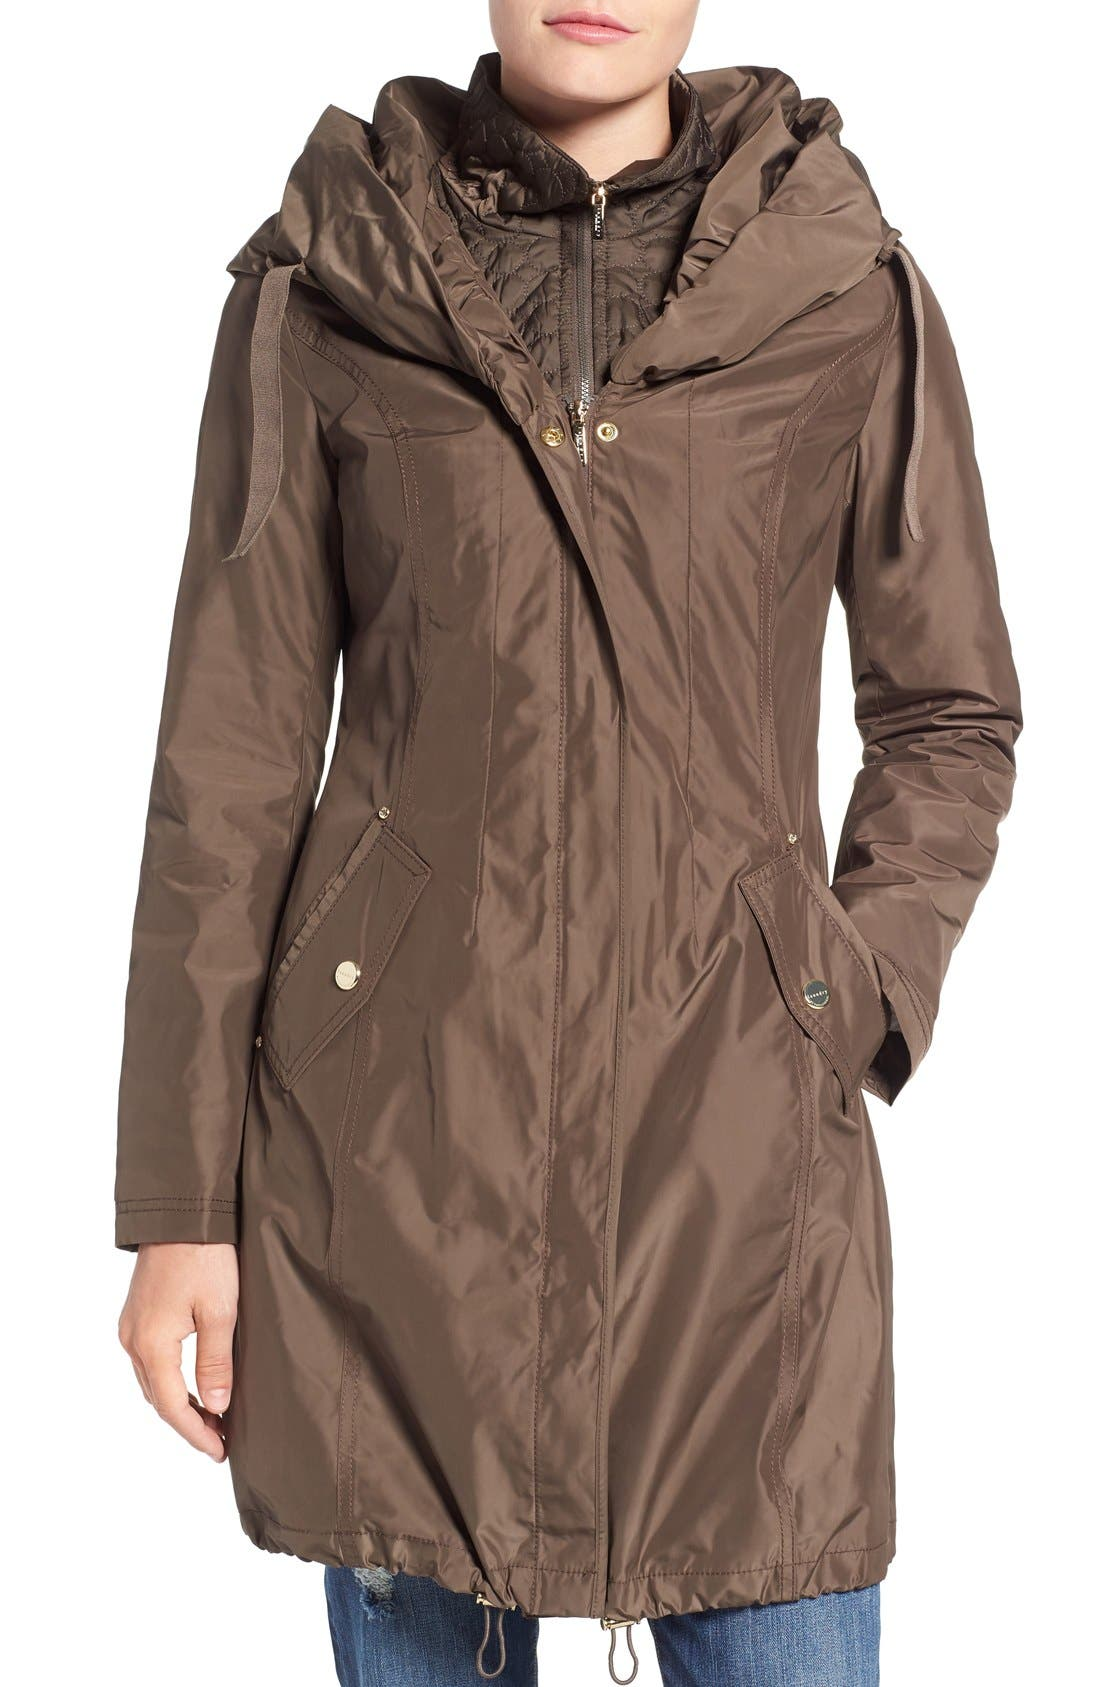 Alternate Image 1 Selected - Laundry by Shelli Segal Pillow Collar Raincoat with Detachable Quilted Hooded Bib Insert (Regular & Petite)